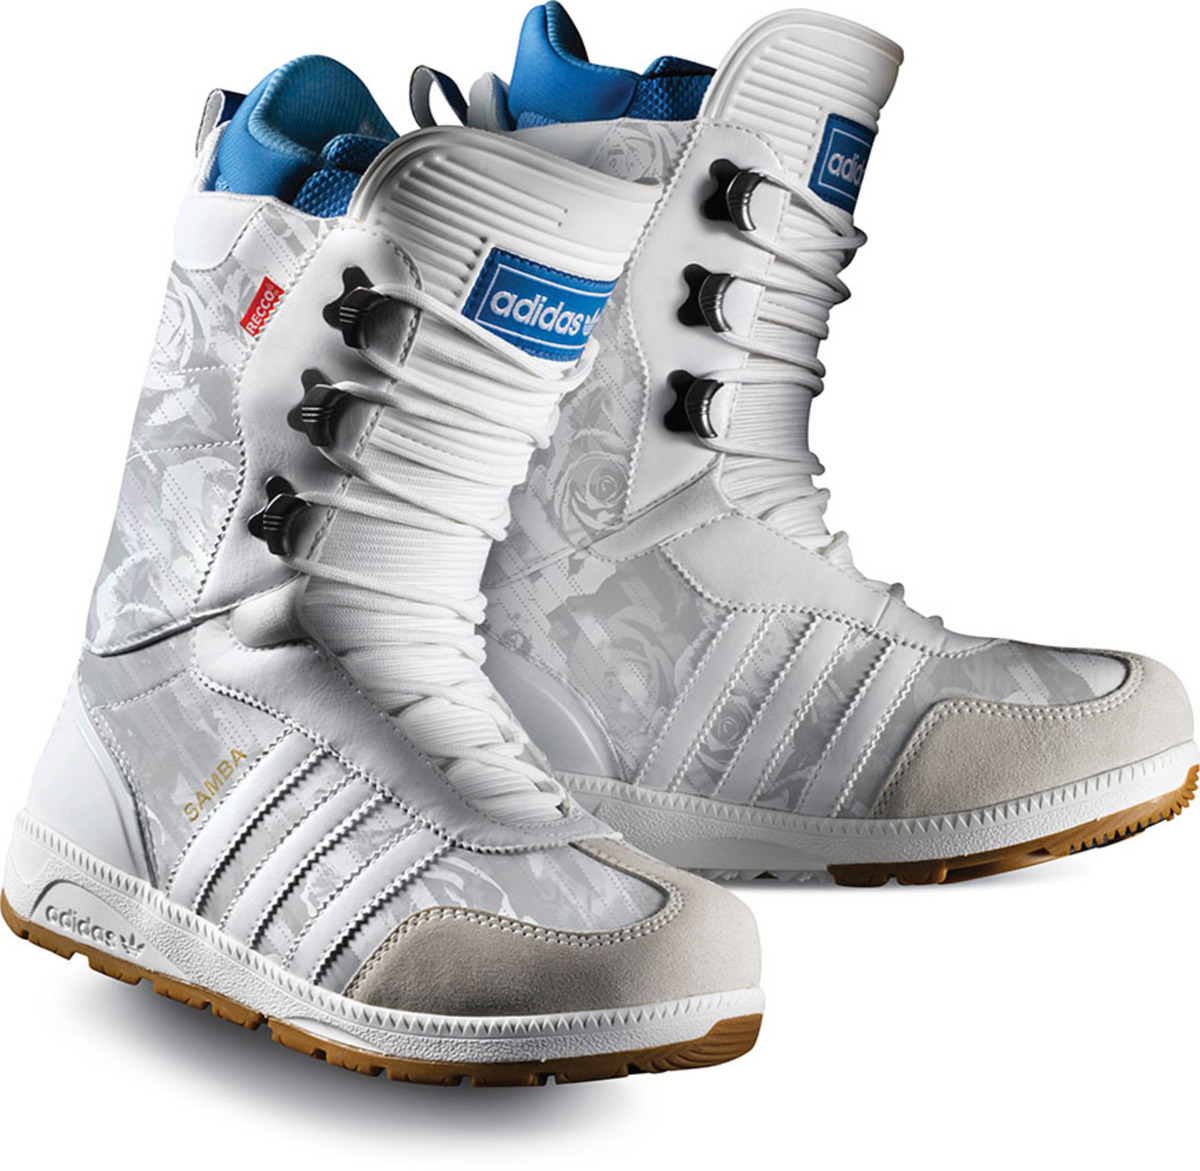 Lastest Adidas Women39s Suede Boots Snow Winter Shoes Fur Lined Boots Norther